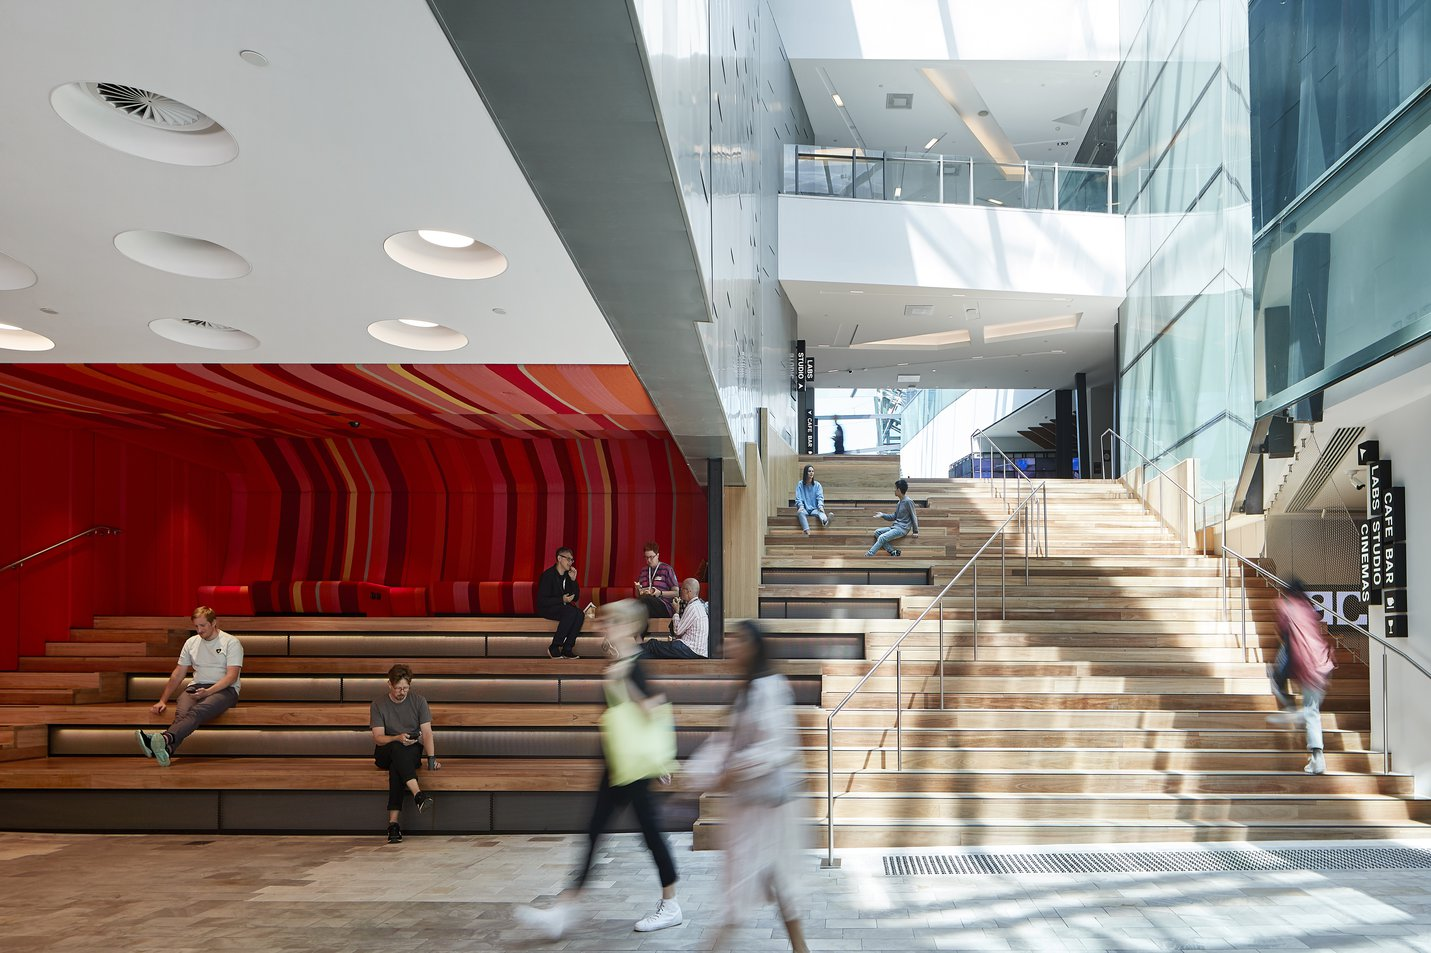 ACMI entrance with staircase and lounge area